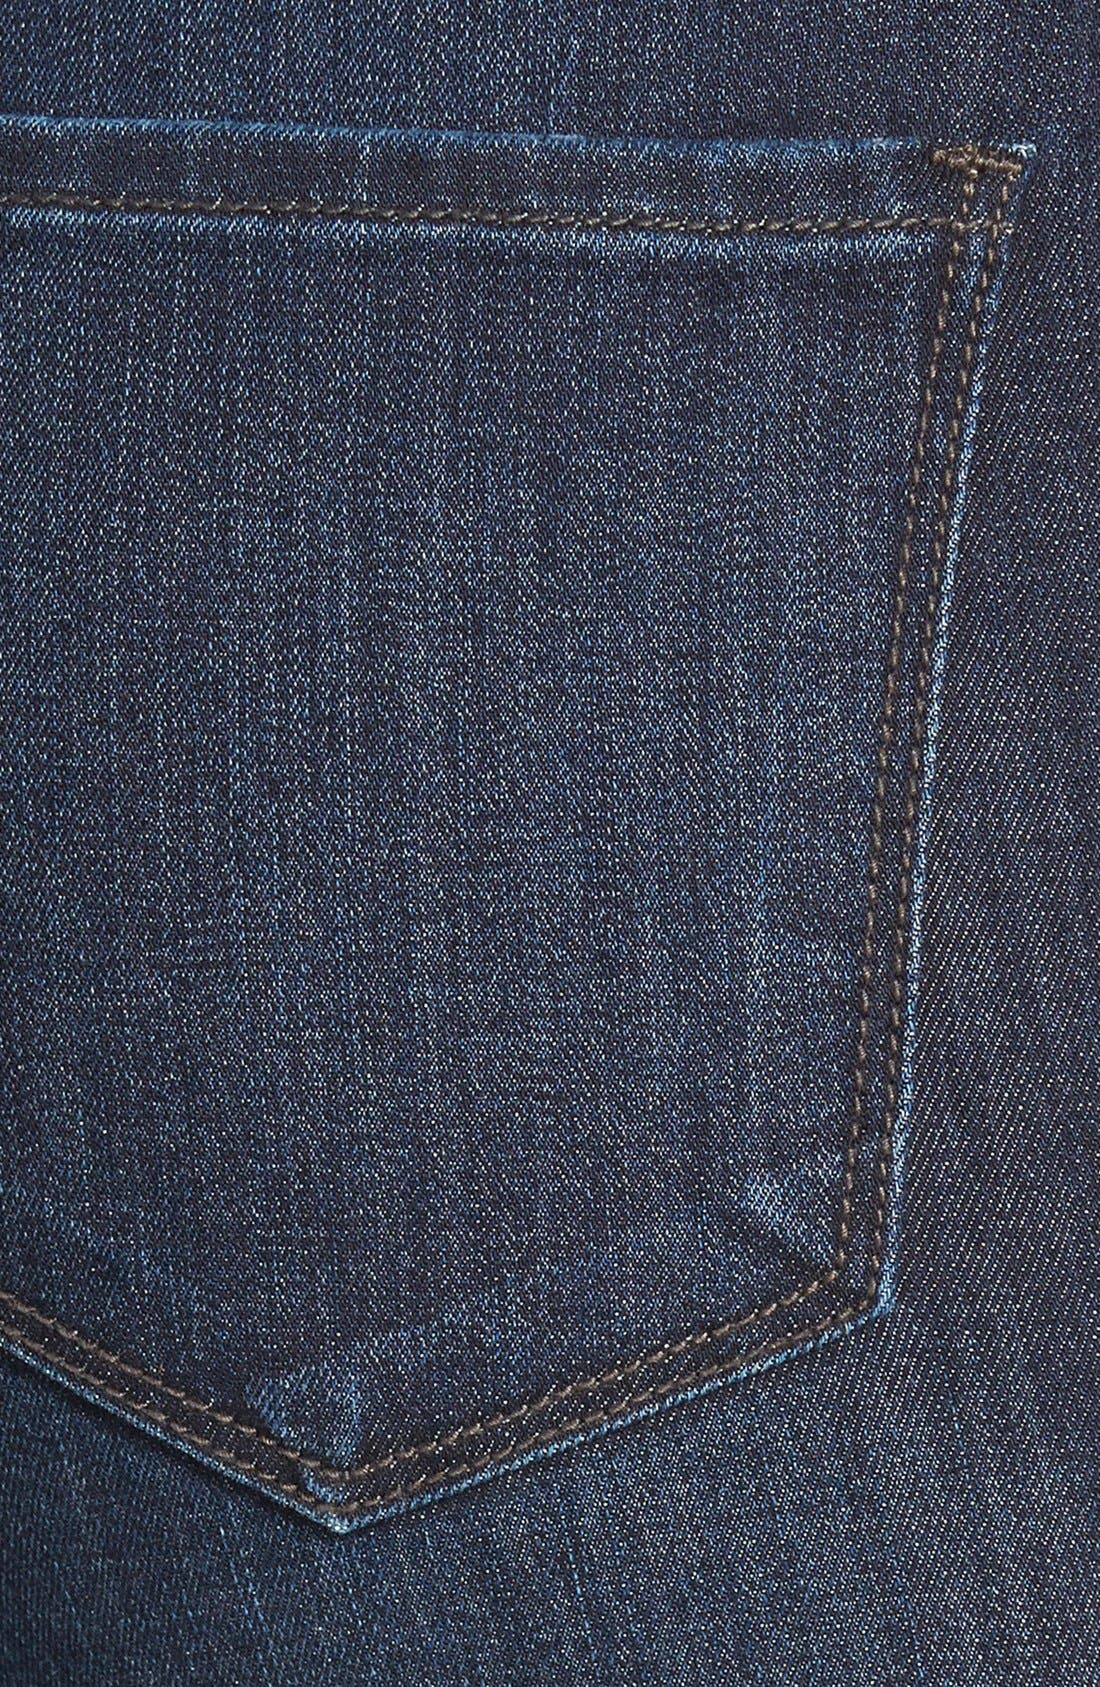 'Brooke' Stretch Bootcut Jeans,                             Alternate thumbnail 2, color,                             421